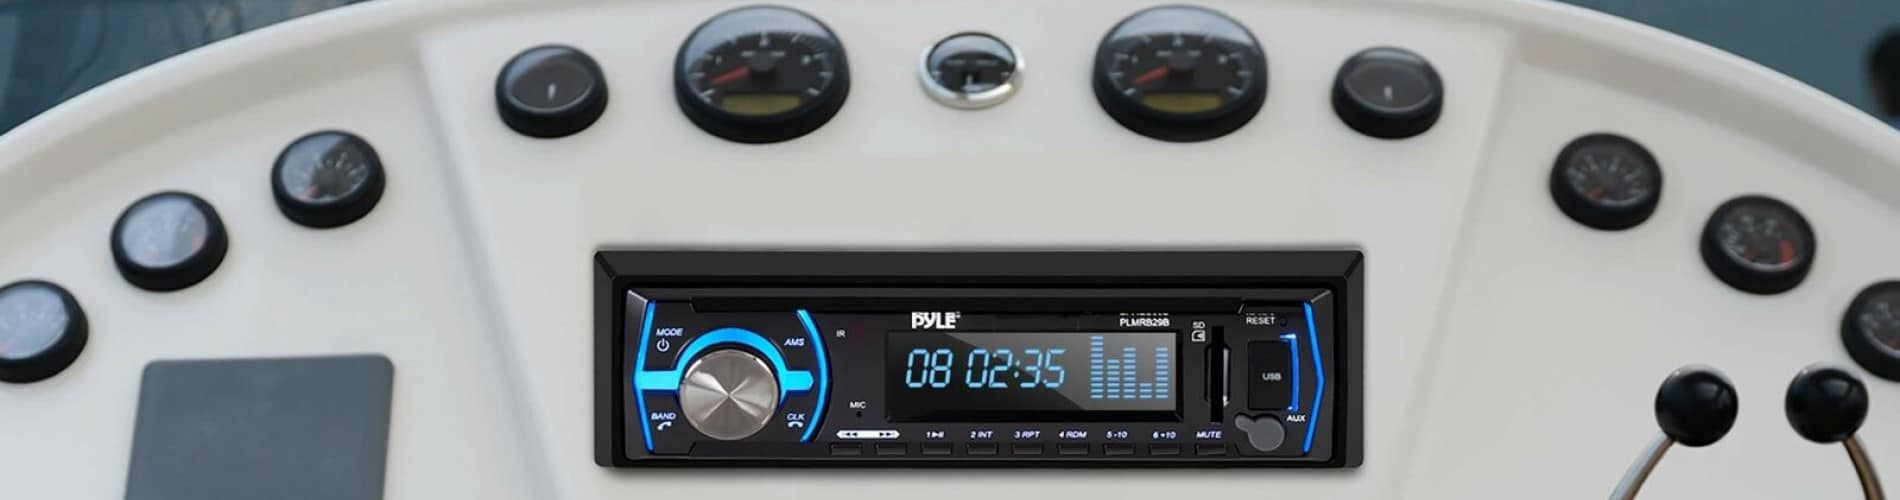 Best Marine Stereos Reviewed in Detail